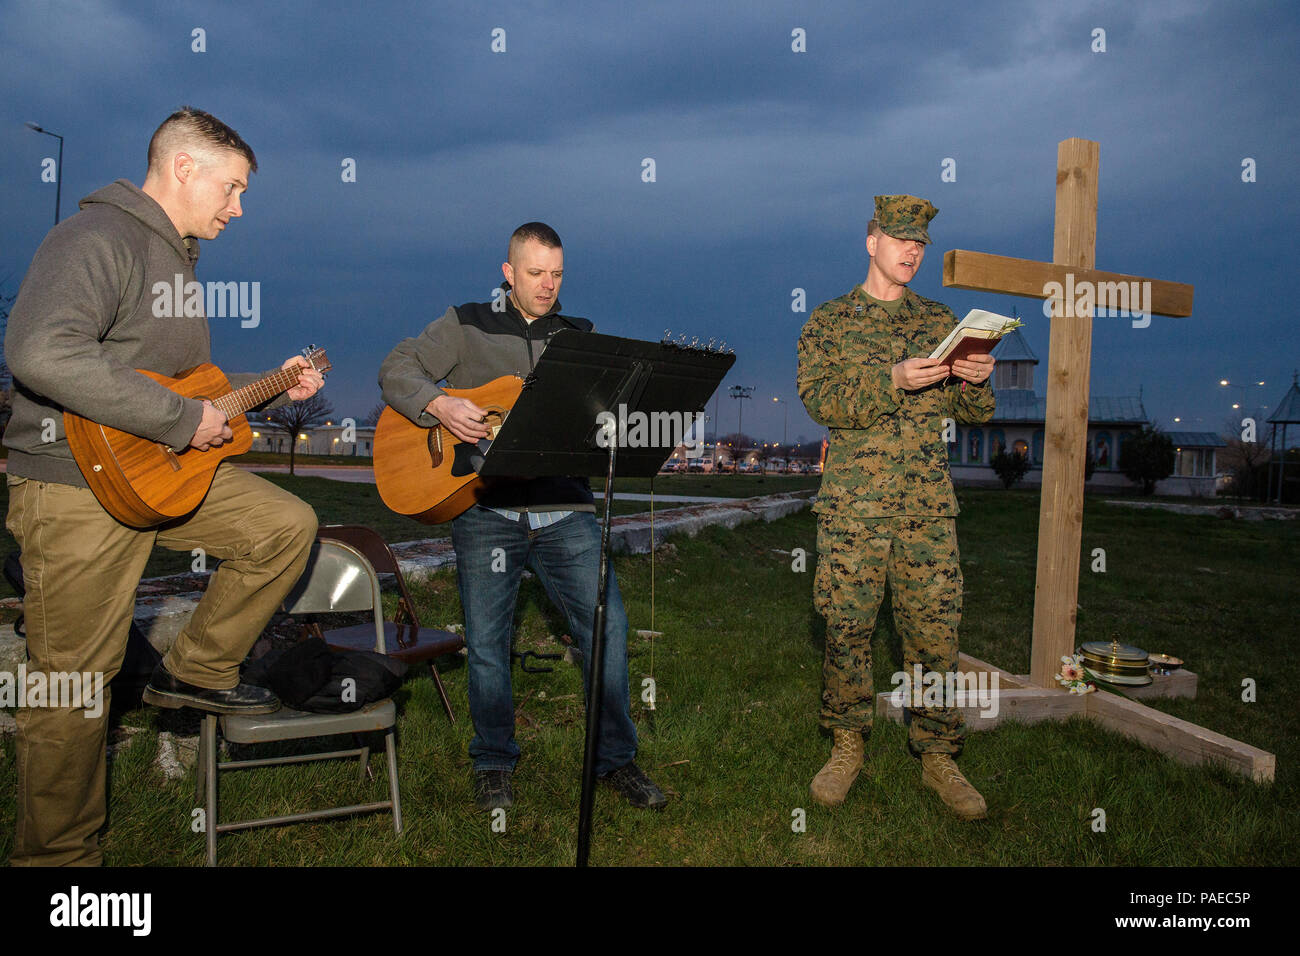 U.S. Service members give praise by song during an Easter sunrise worship service aboard Mihail Kognalniceanu Air Base, Romania, March 27, 2016. Christians around the world celebrated Easter and the resurrection of Jesus Christ. (U.S. Marine Corps photo by Cpl. Kelly L. Street, 2D MARDIV COMCAM/Released) Stock Photo